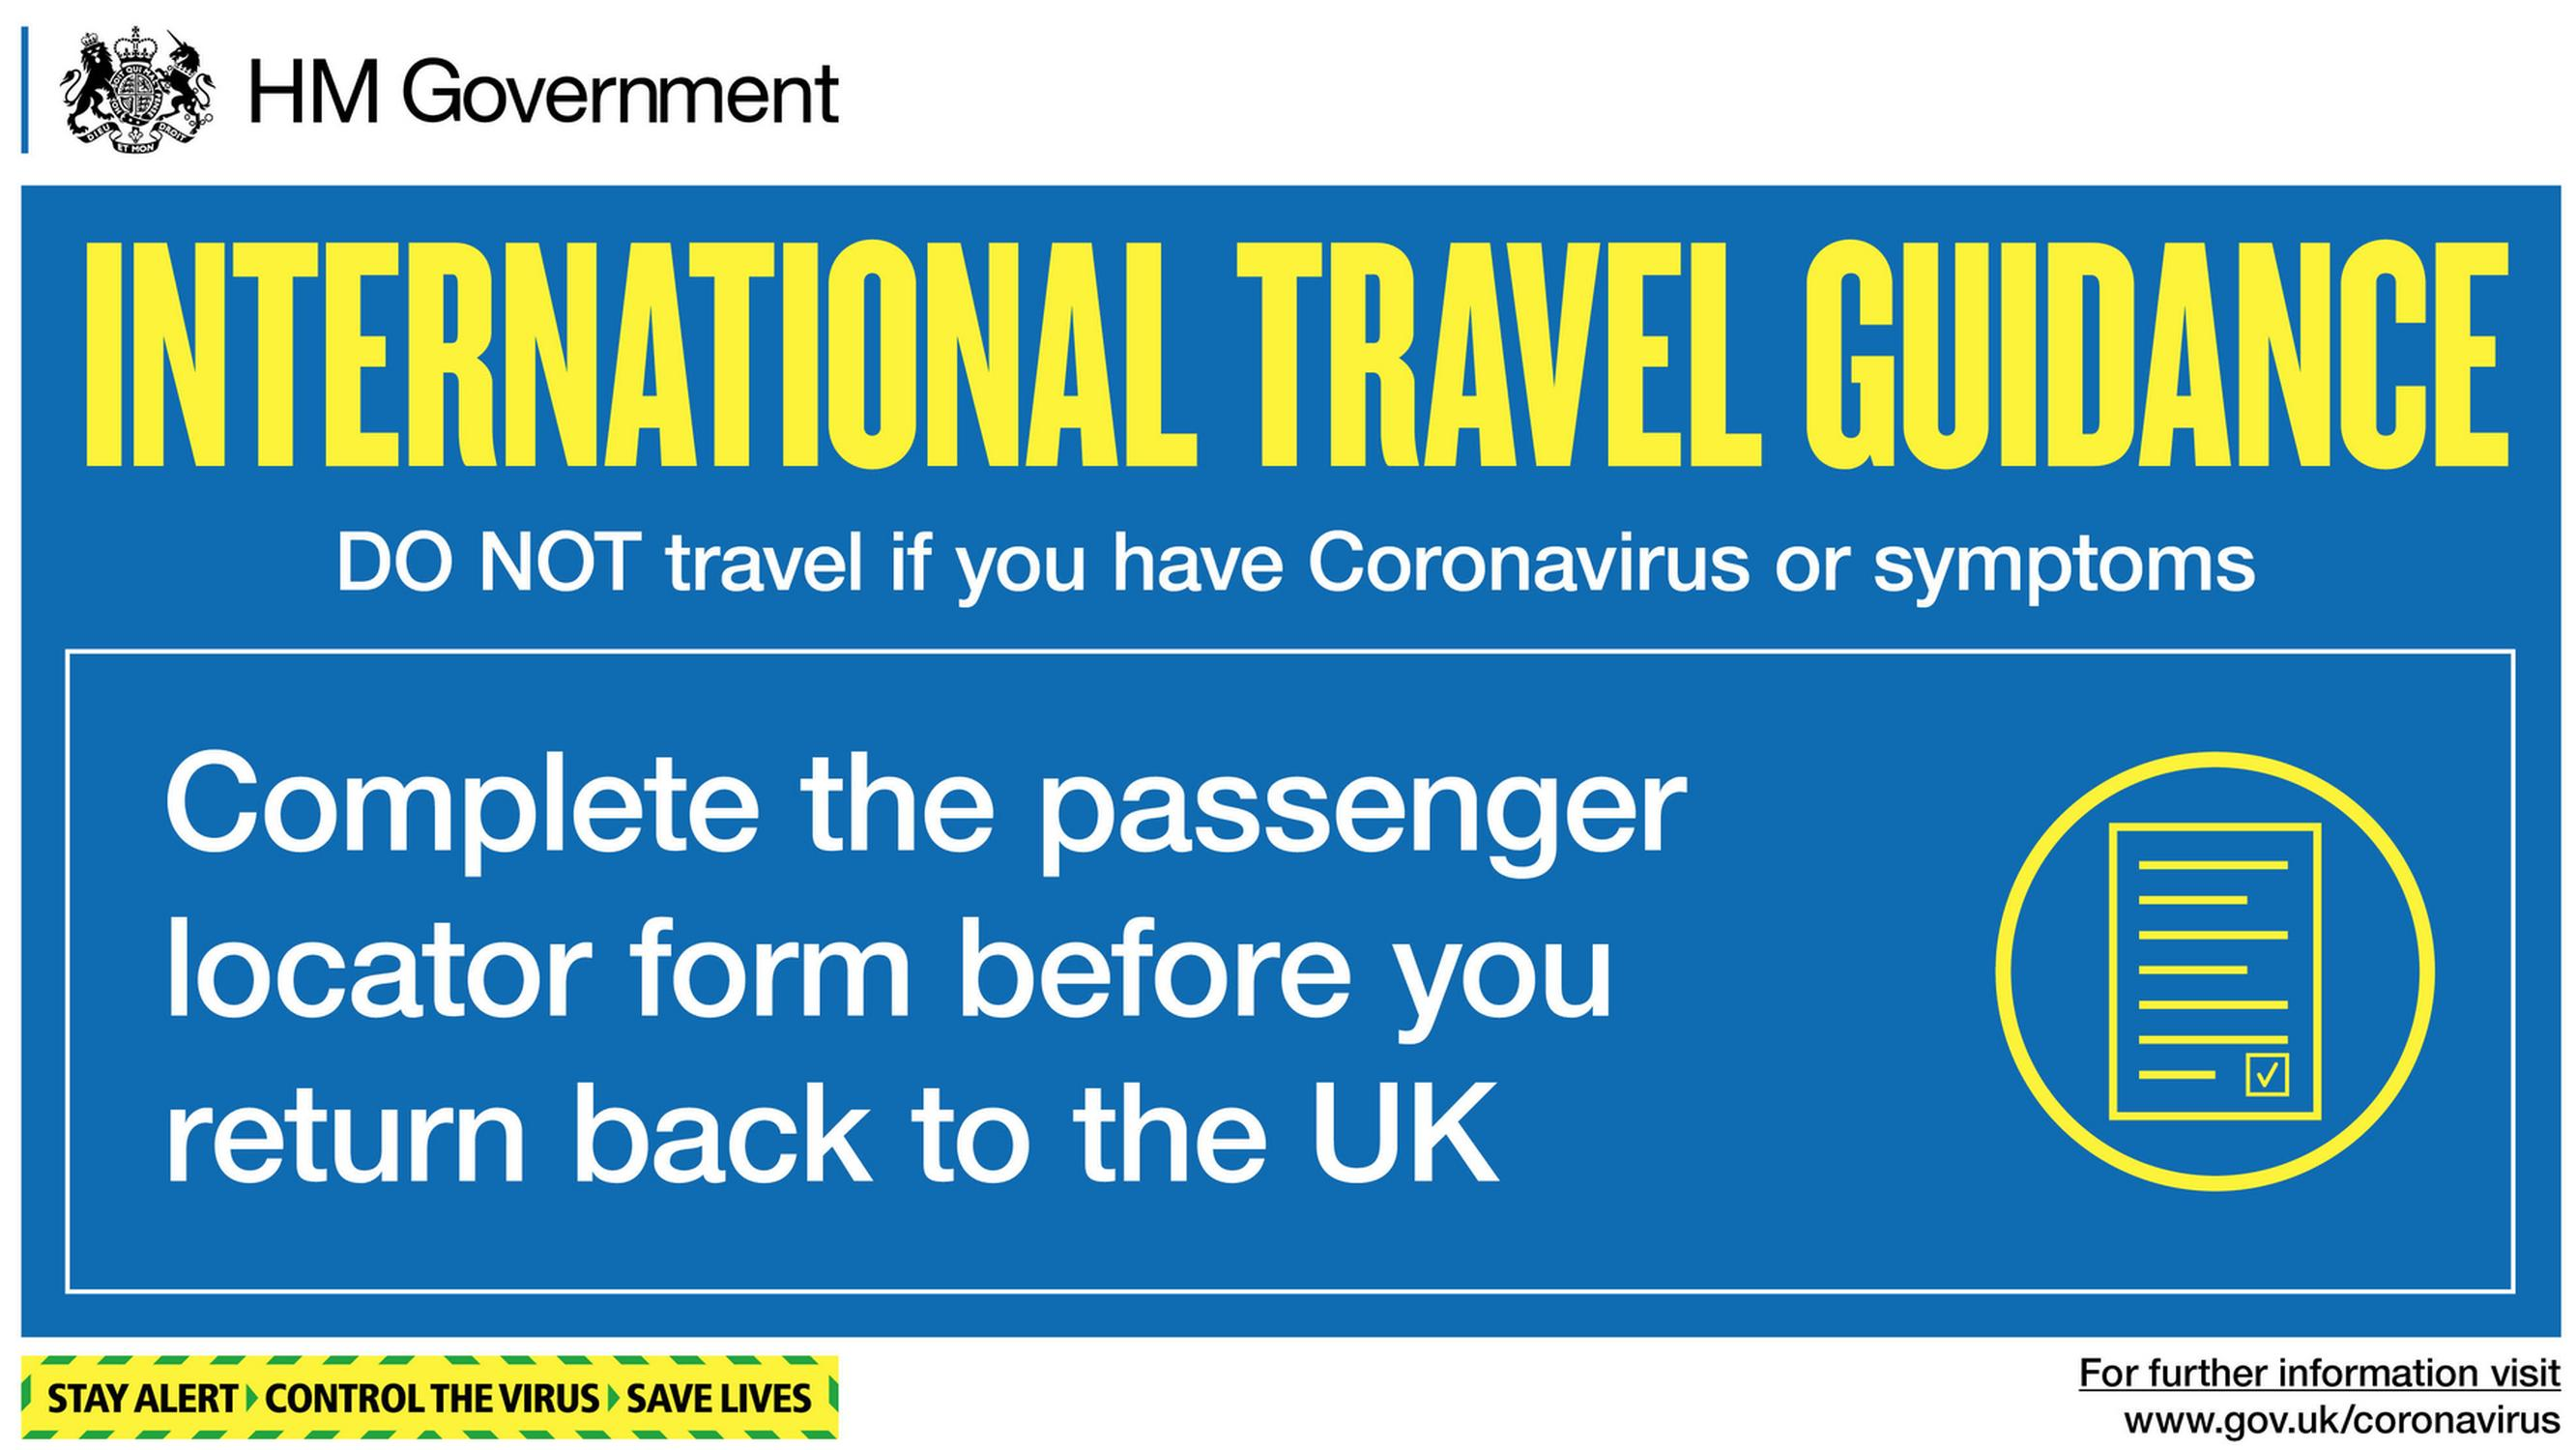 All travellers, including those from exempt destinations, will be required to show a completed passenger locator form on arrival into the UK unless they fall into a small group of exemptions, with failure to do so resulting in a £100 fine.